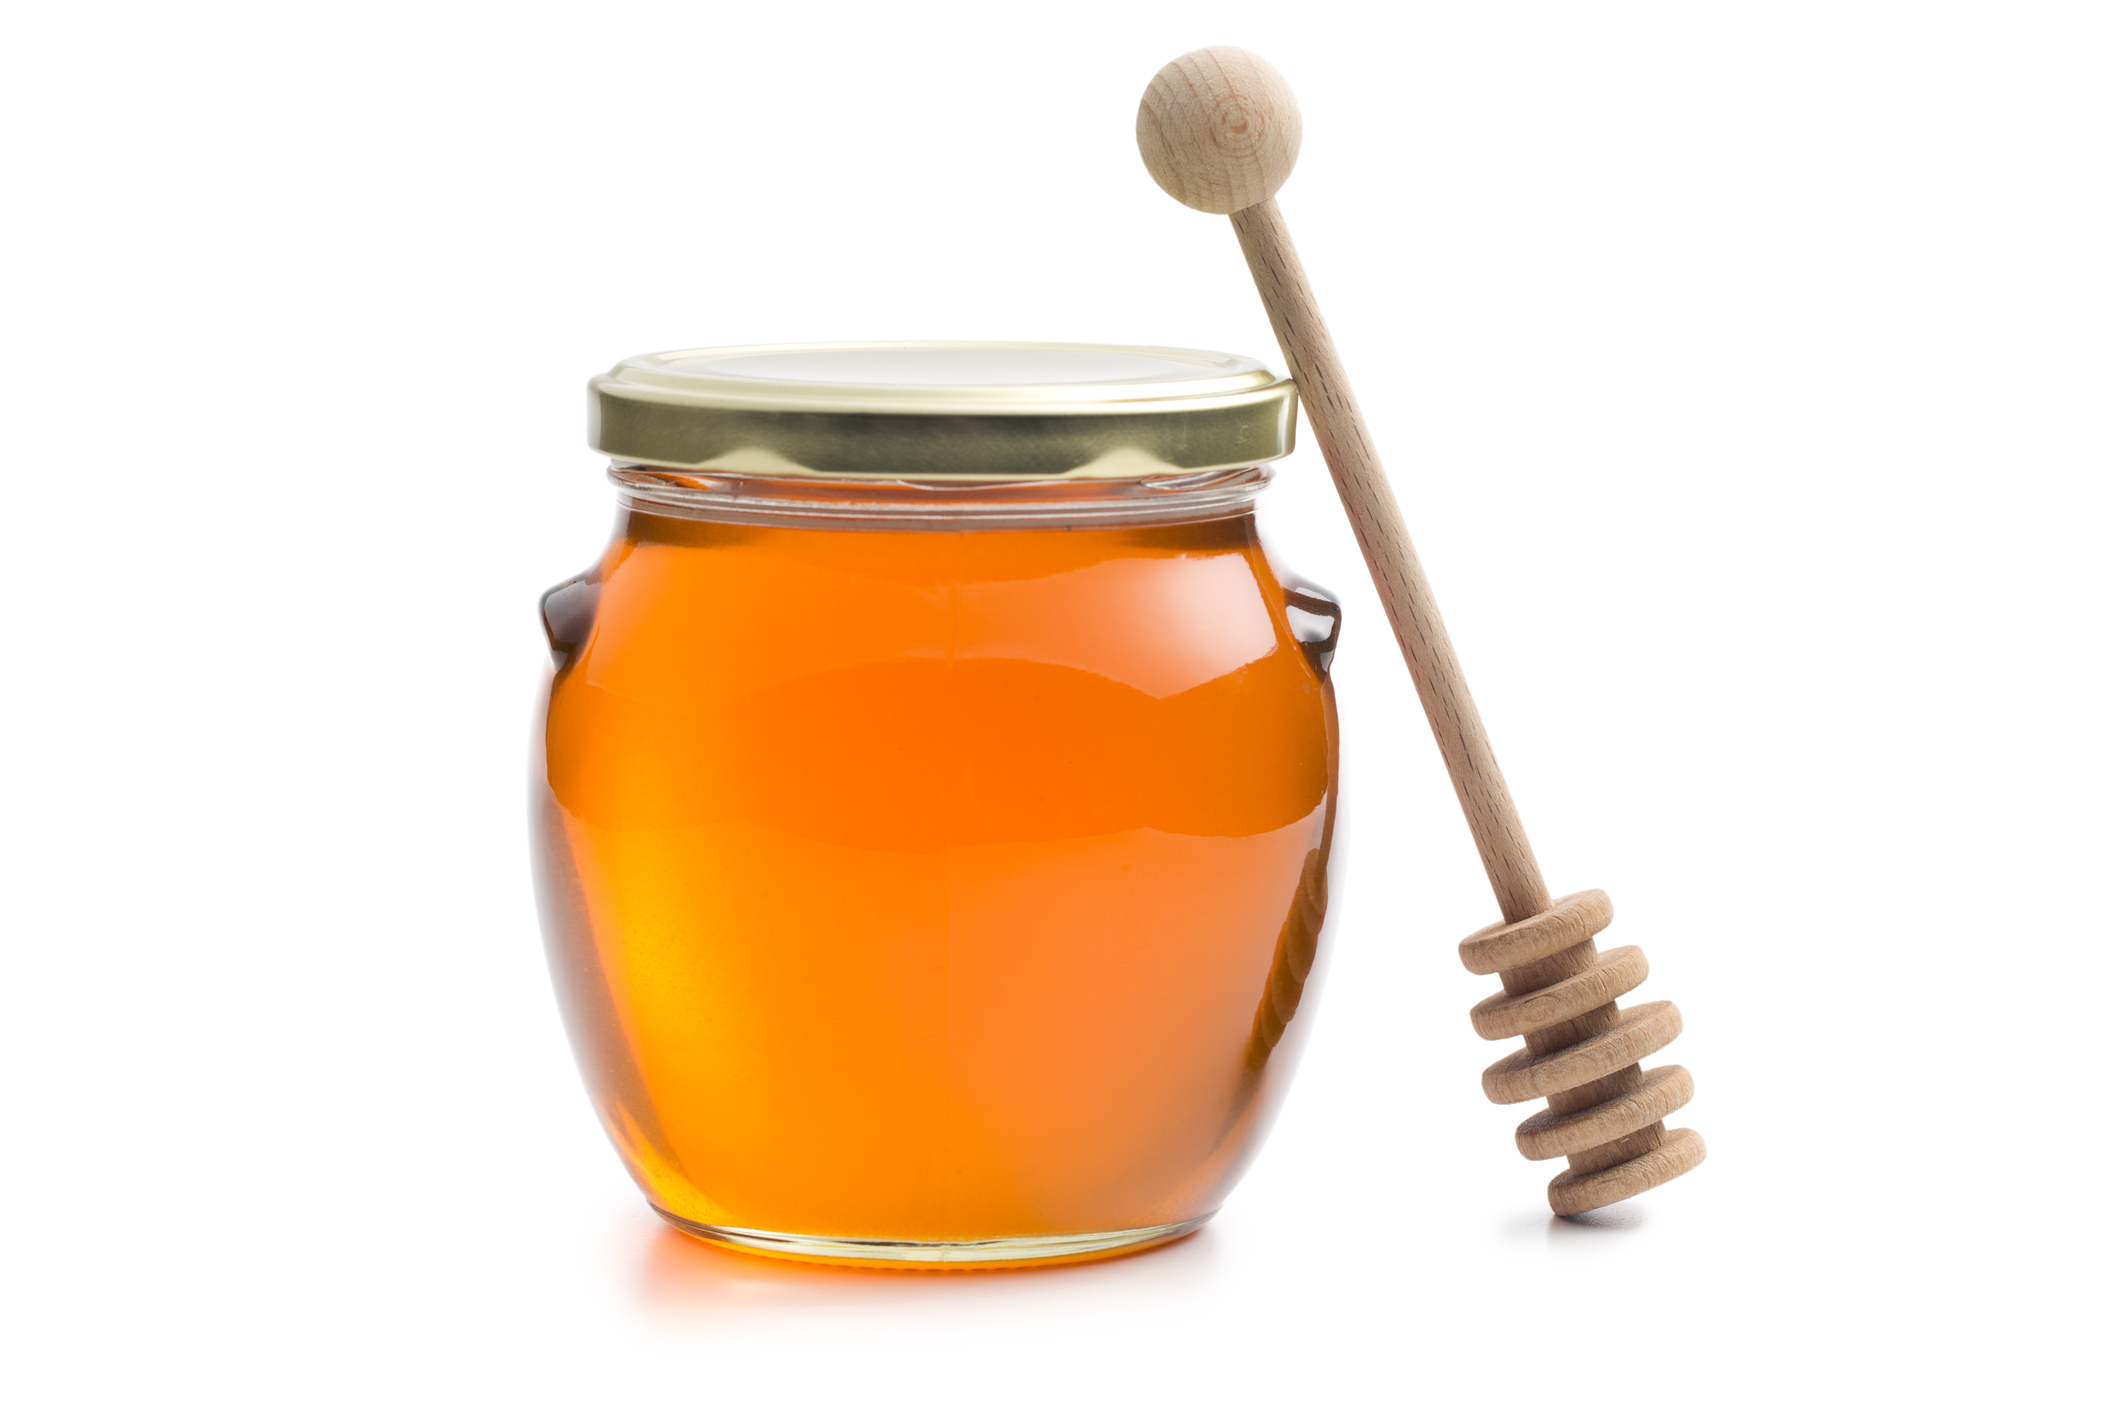 15 Kg Fireweed Honey - $215.00